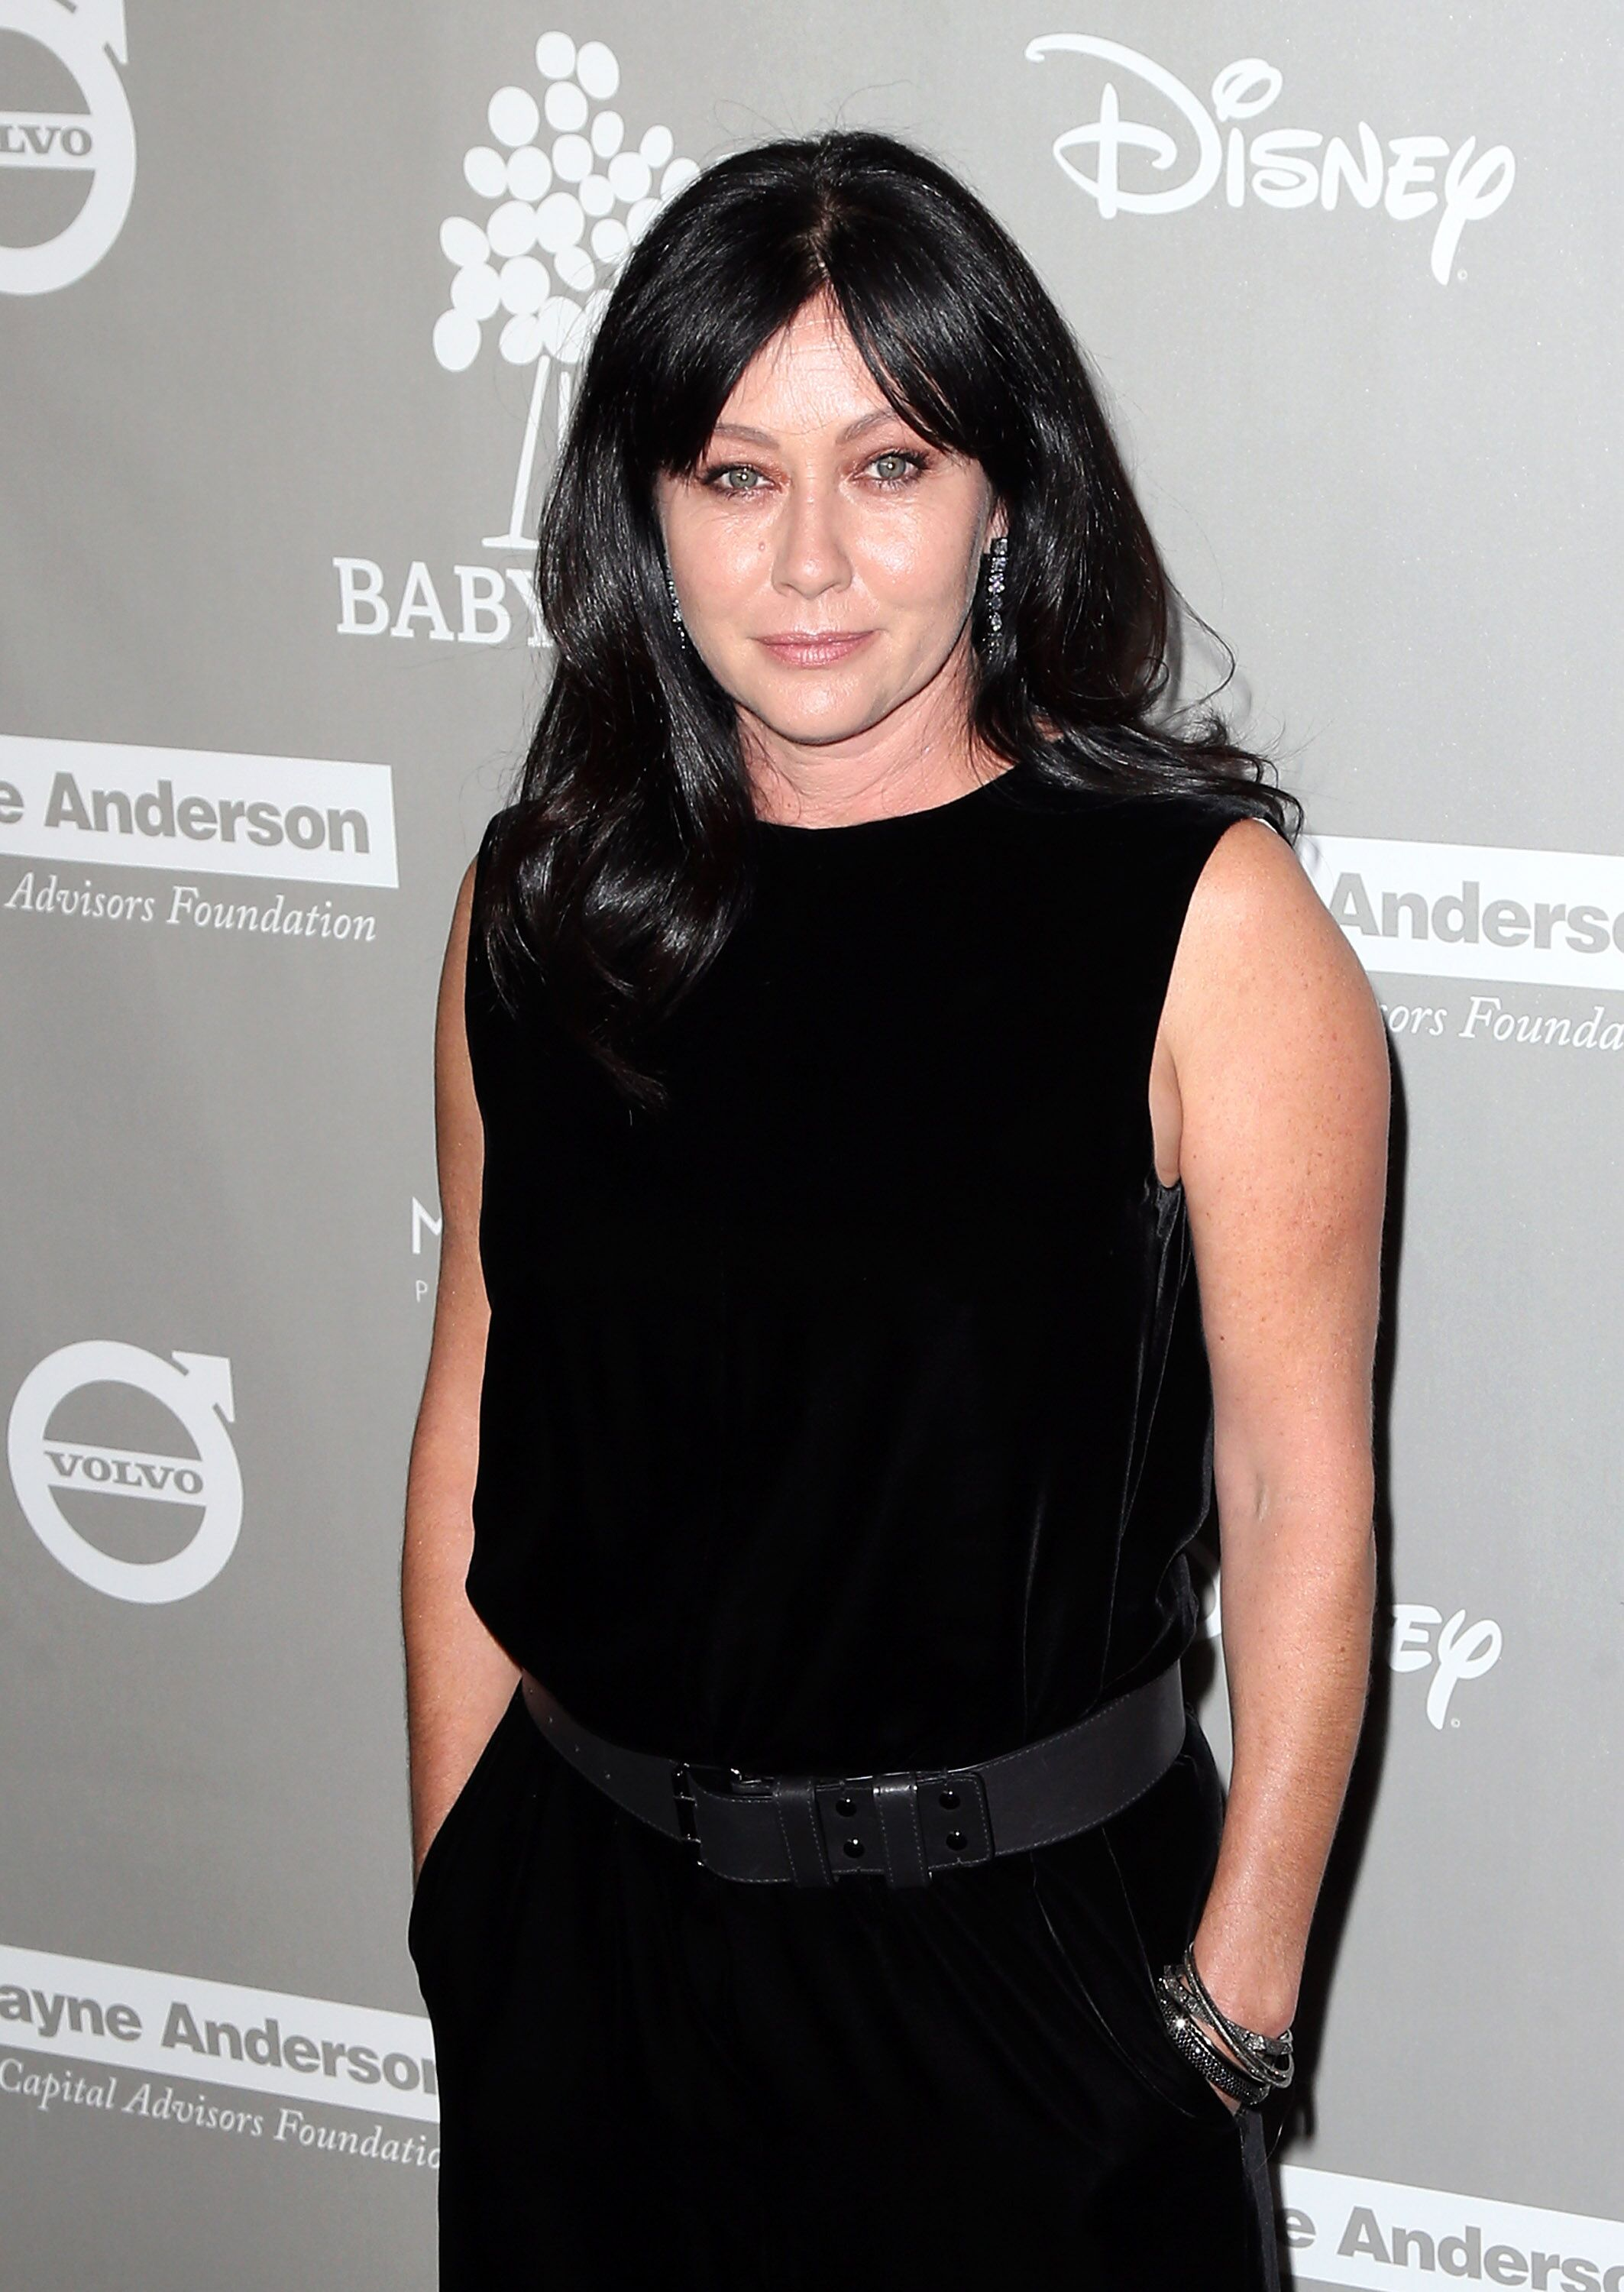 Shannen Doherty at the Baby2Baby Gala in 2015 | Source: Getty Images